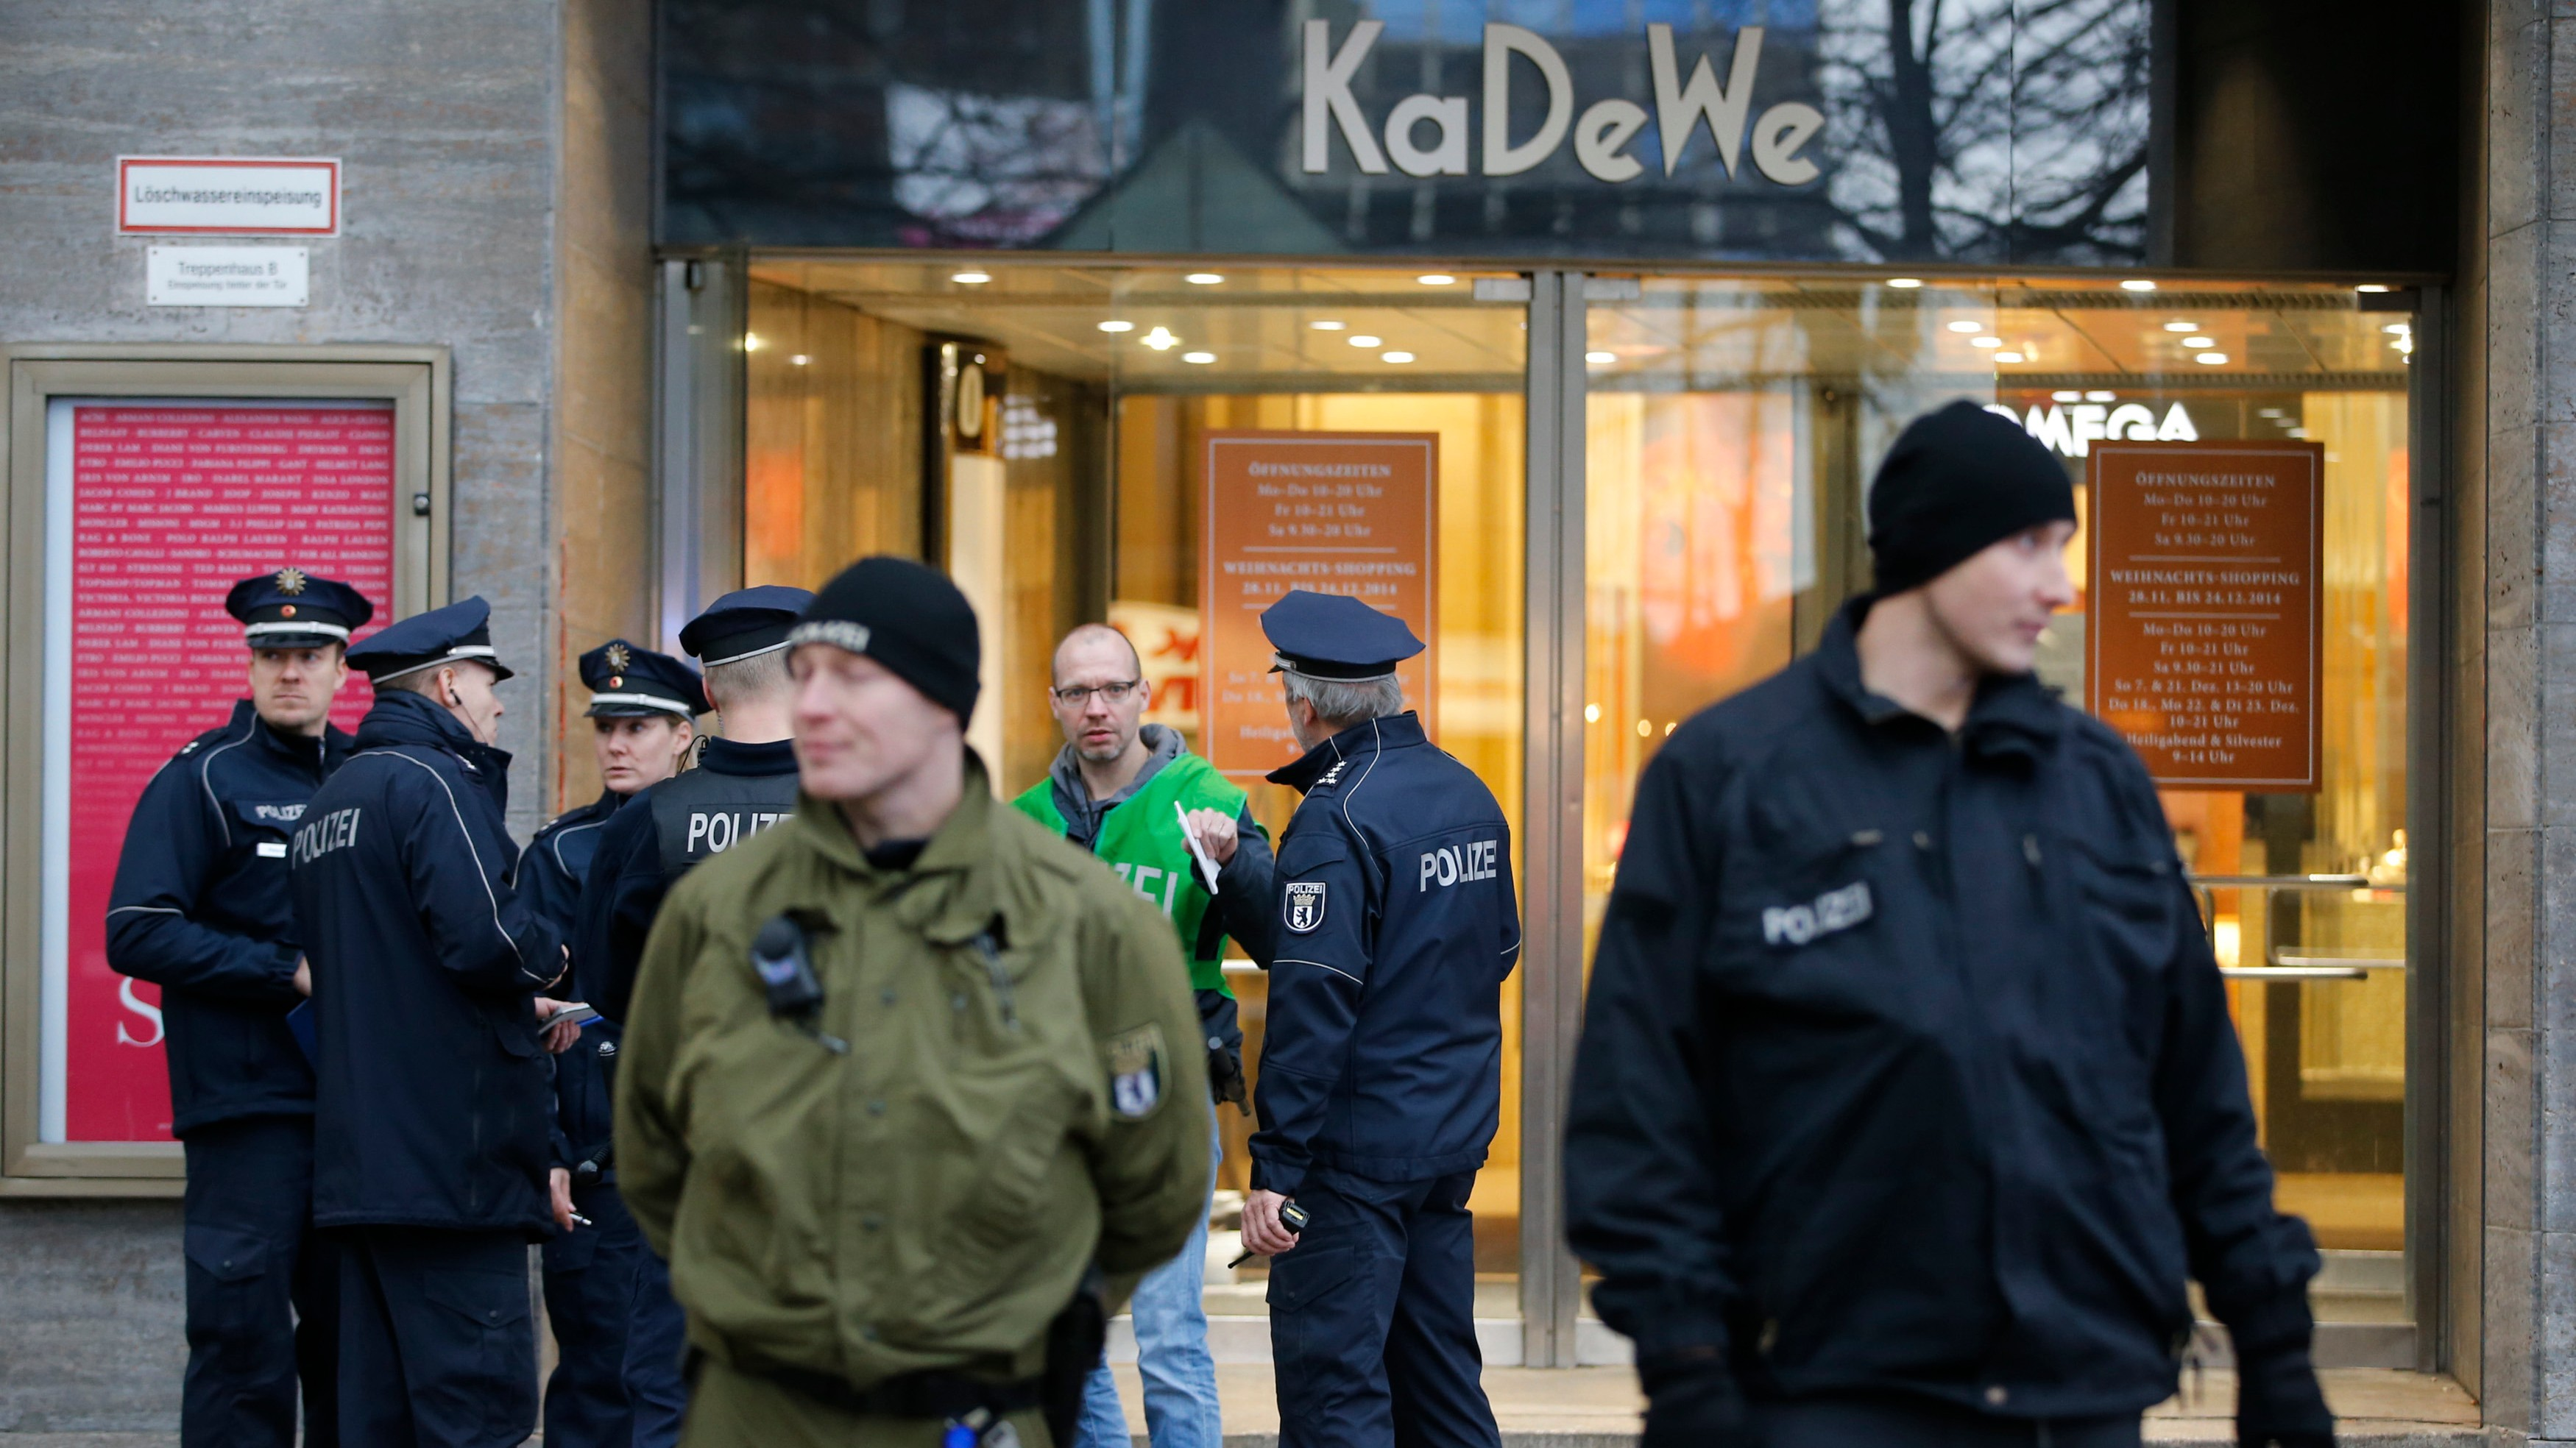 Masked Thieves Loot Luxury Berlin Department Store in Daring Daytime Heist